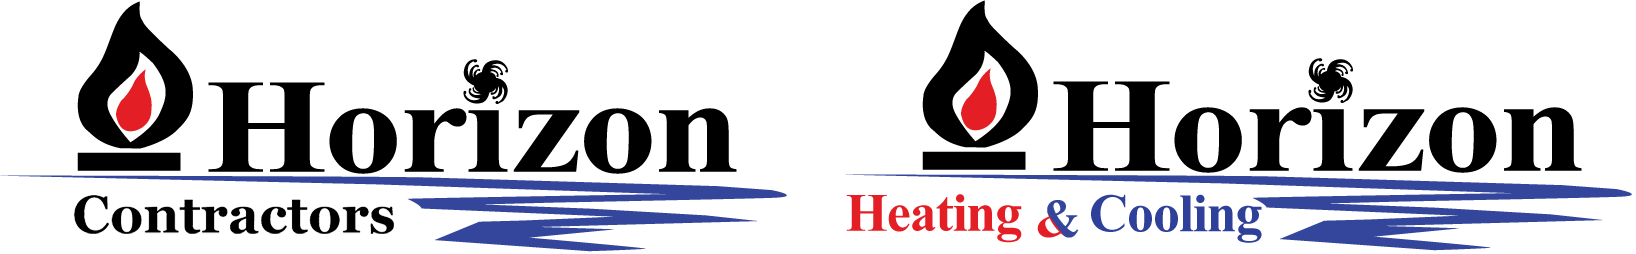 Horizon Contractors/Horizon Heating & Cooling